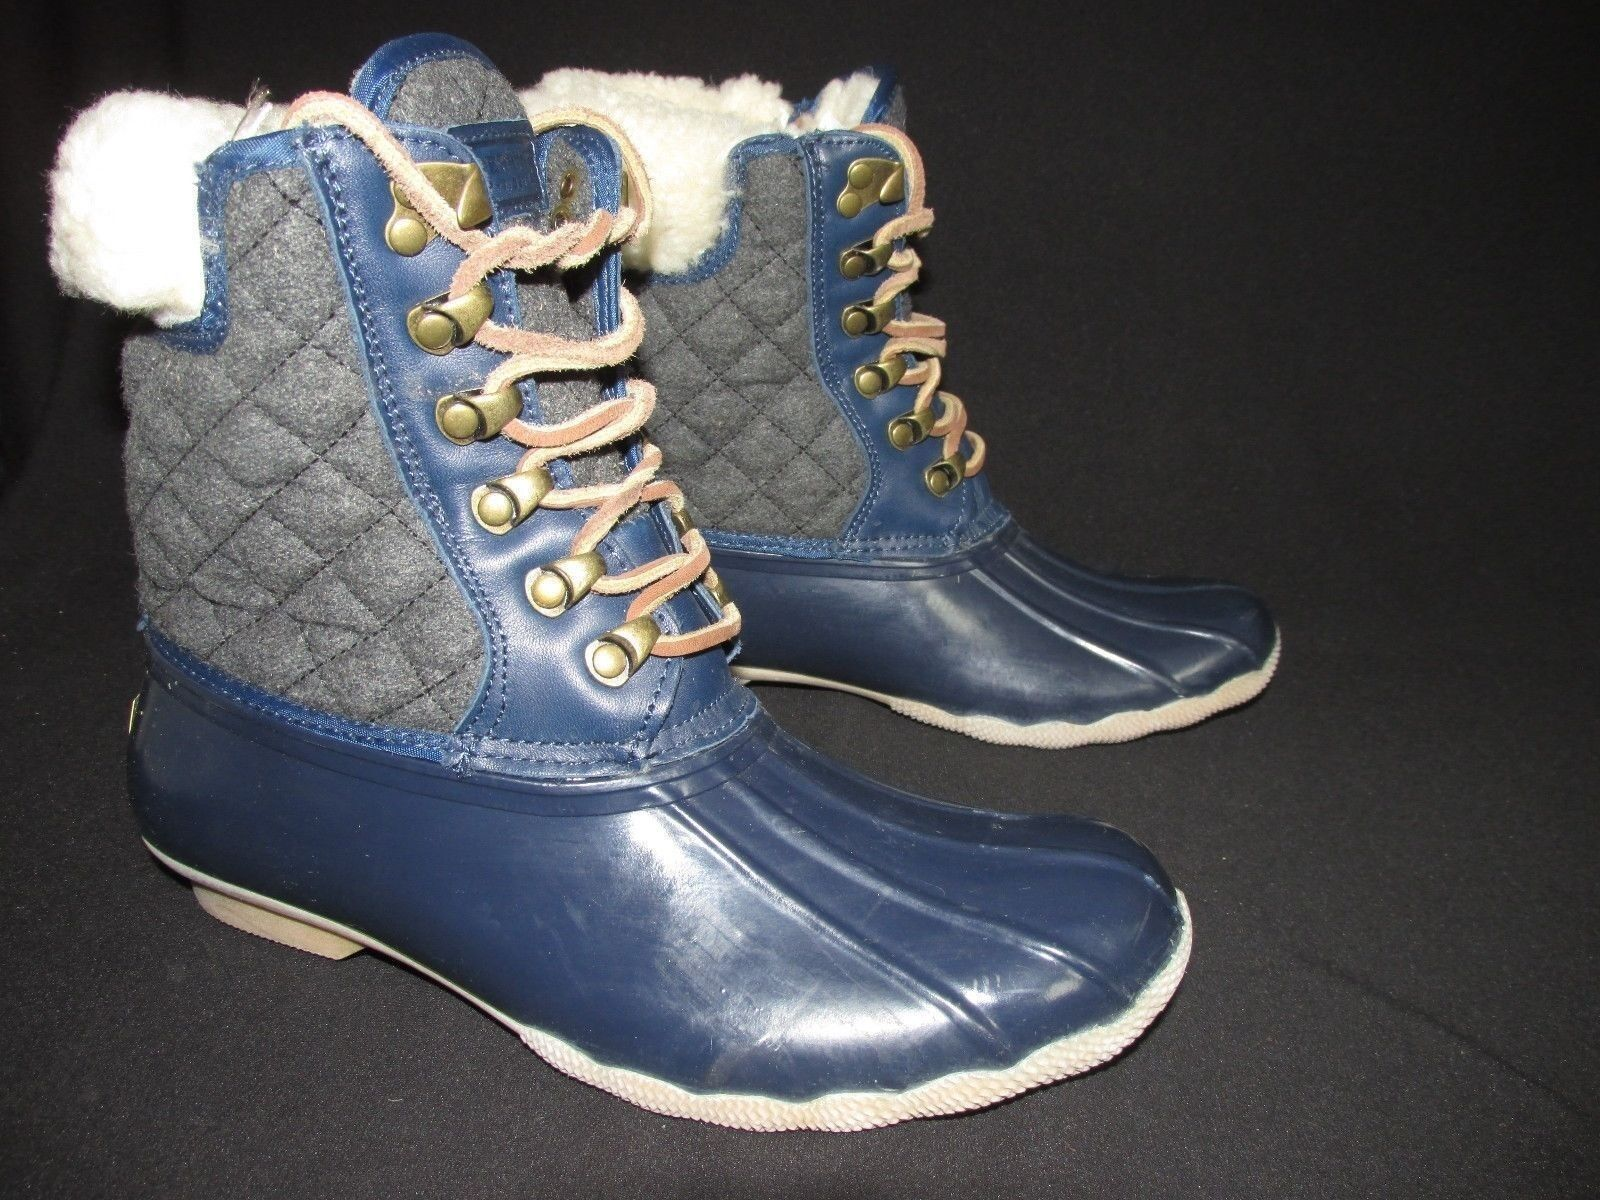 Sperry Top-Sider for J.Crew Quilted Short ShearwaterNavy   Boots Women's  US 8M